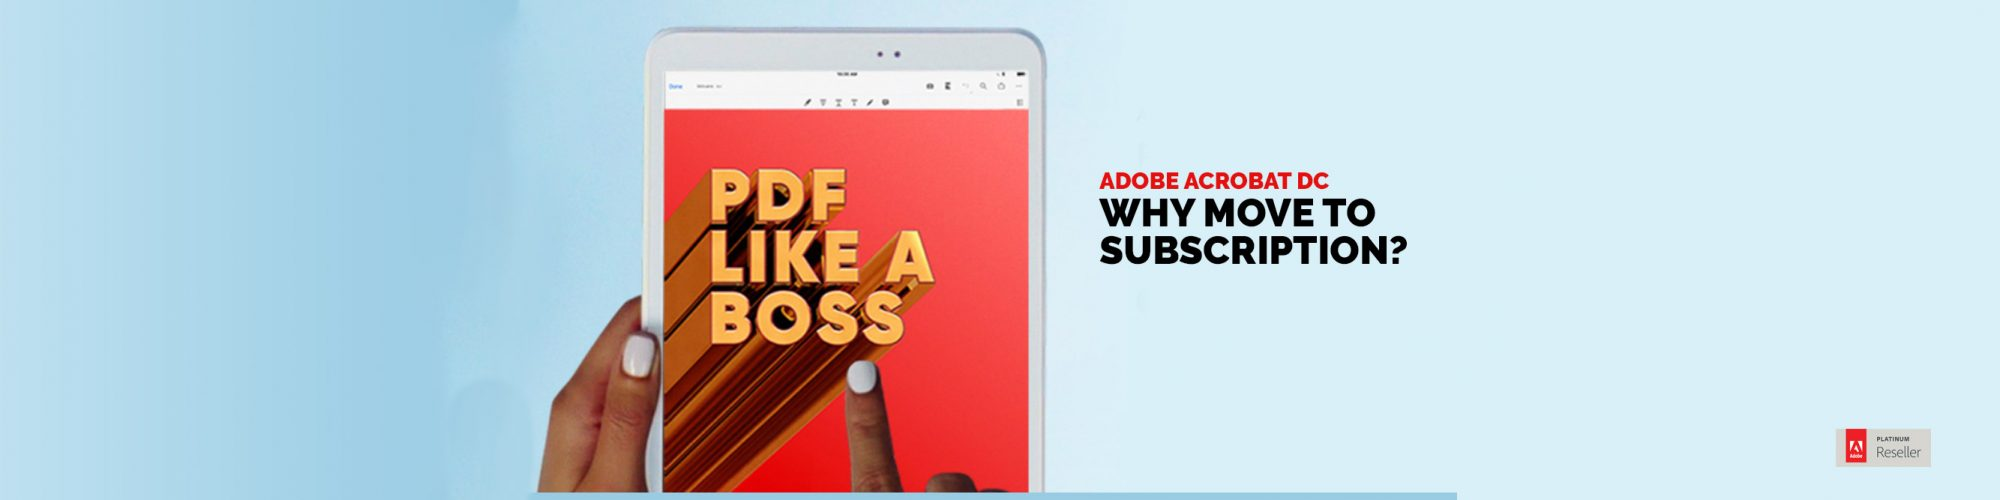 Acrobat DC why move to Subscription – What's new and what does it mean to me?